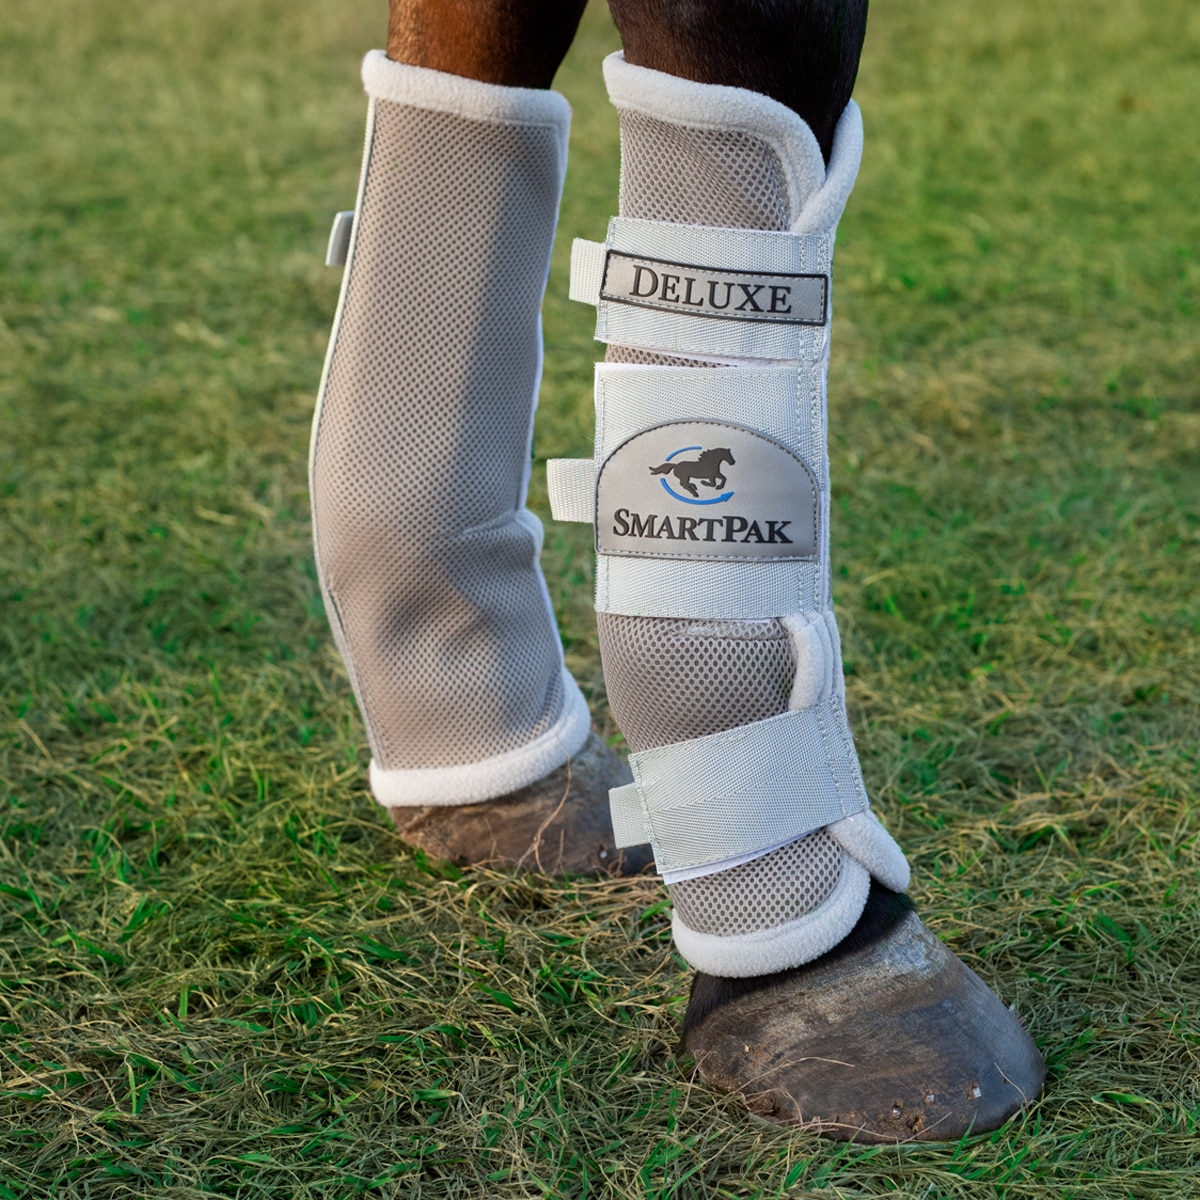 SmartPak Deluxe Fly Boots